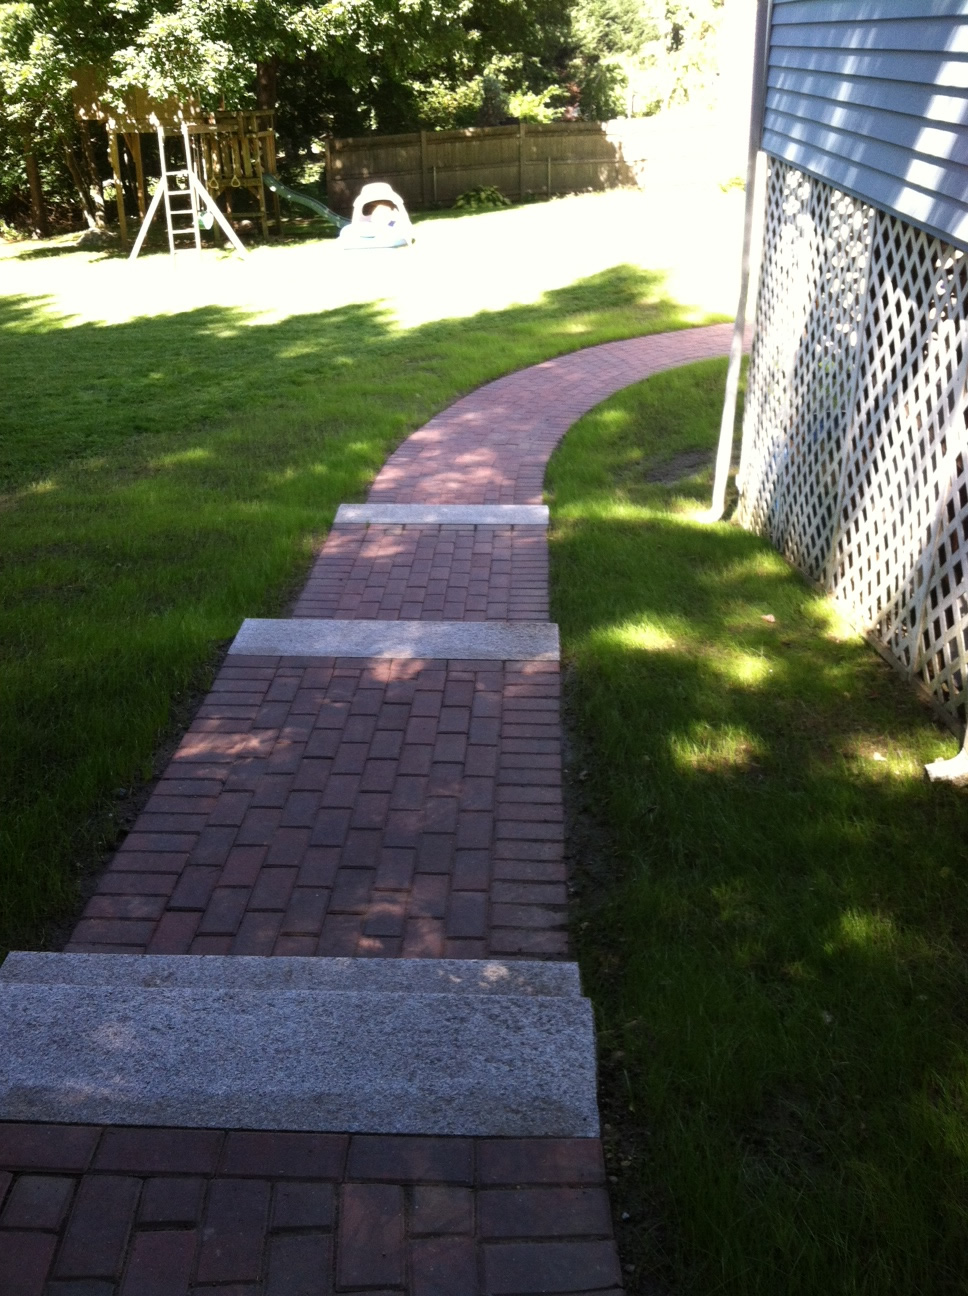 Brick & Granite Walkway installed in Lexington, MA by TPM Construction.